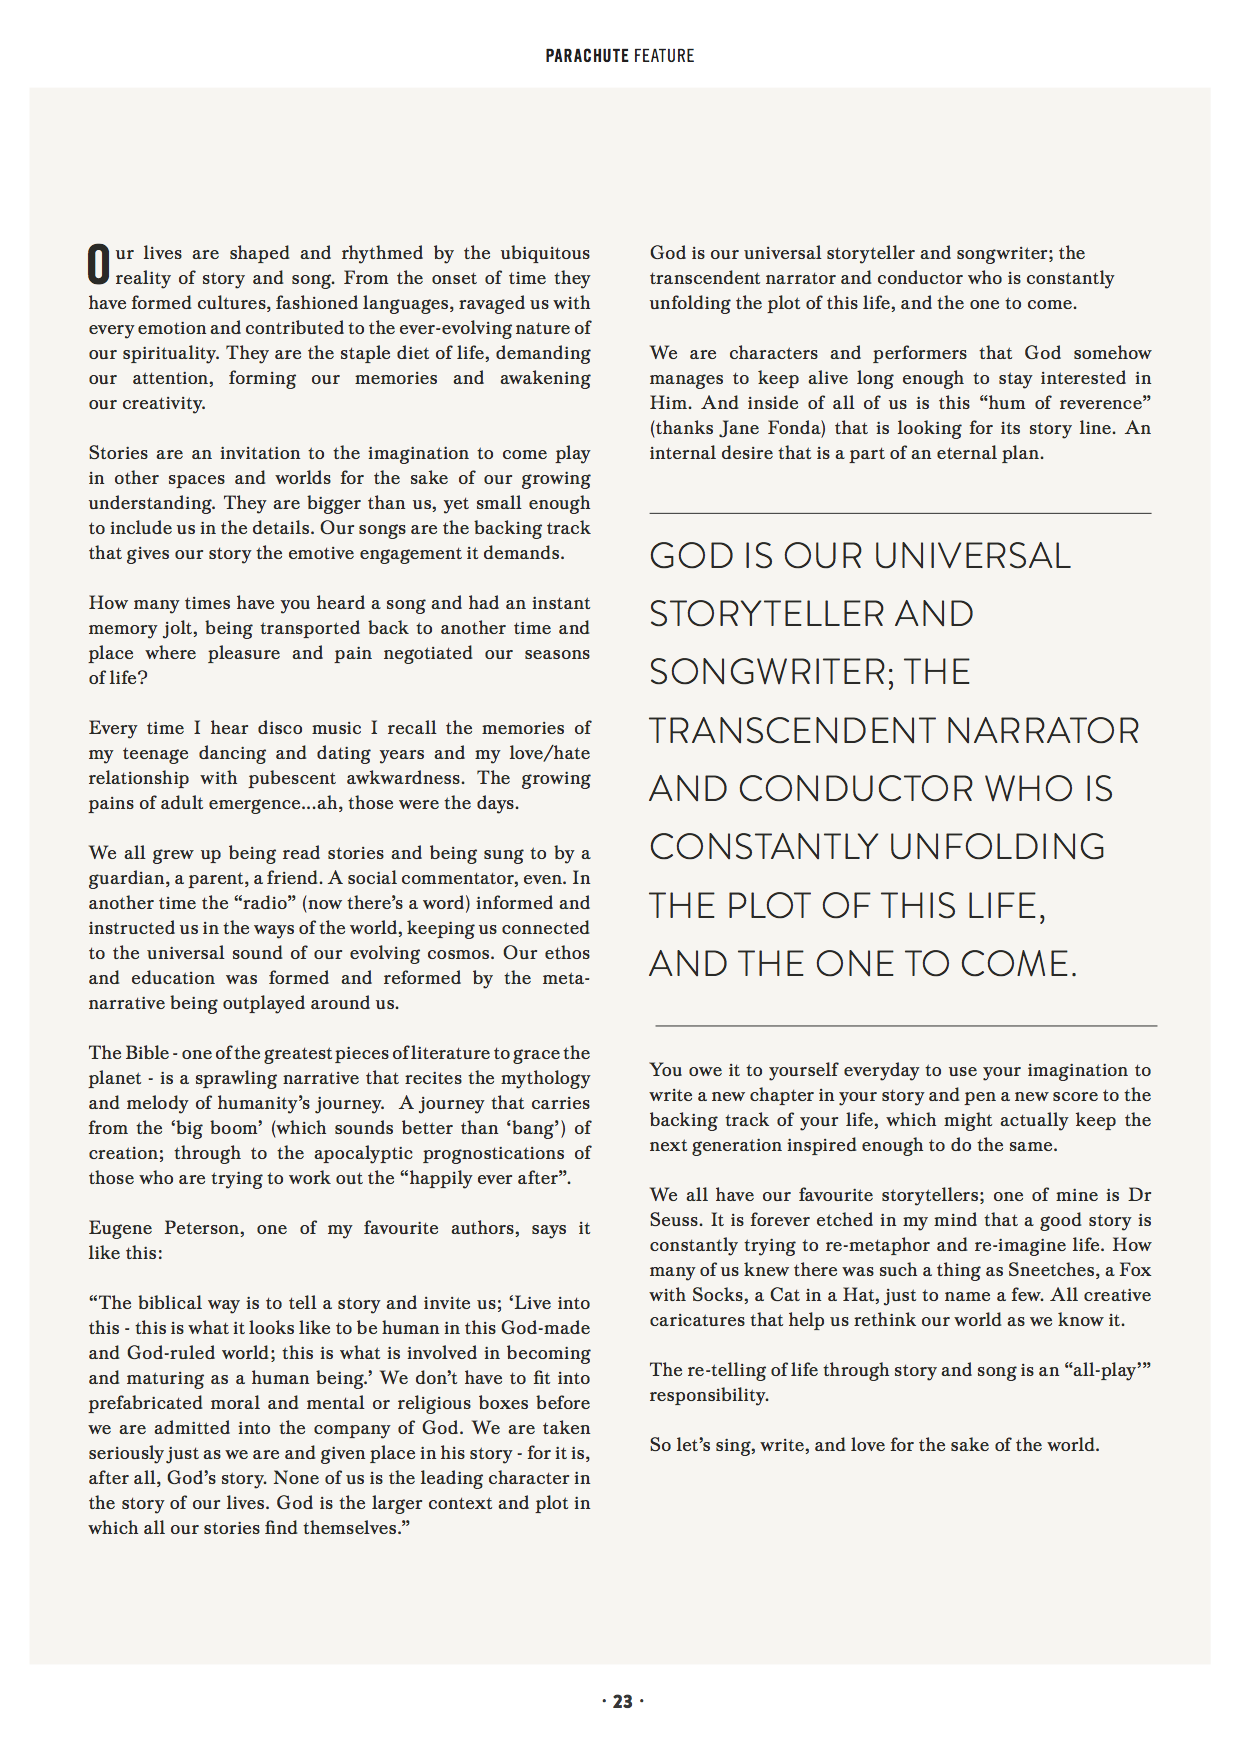 Pages from P13 PARACHUTE MAG_FINAL_V2_ONLINEp2-2 (dragged).png